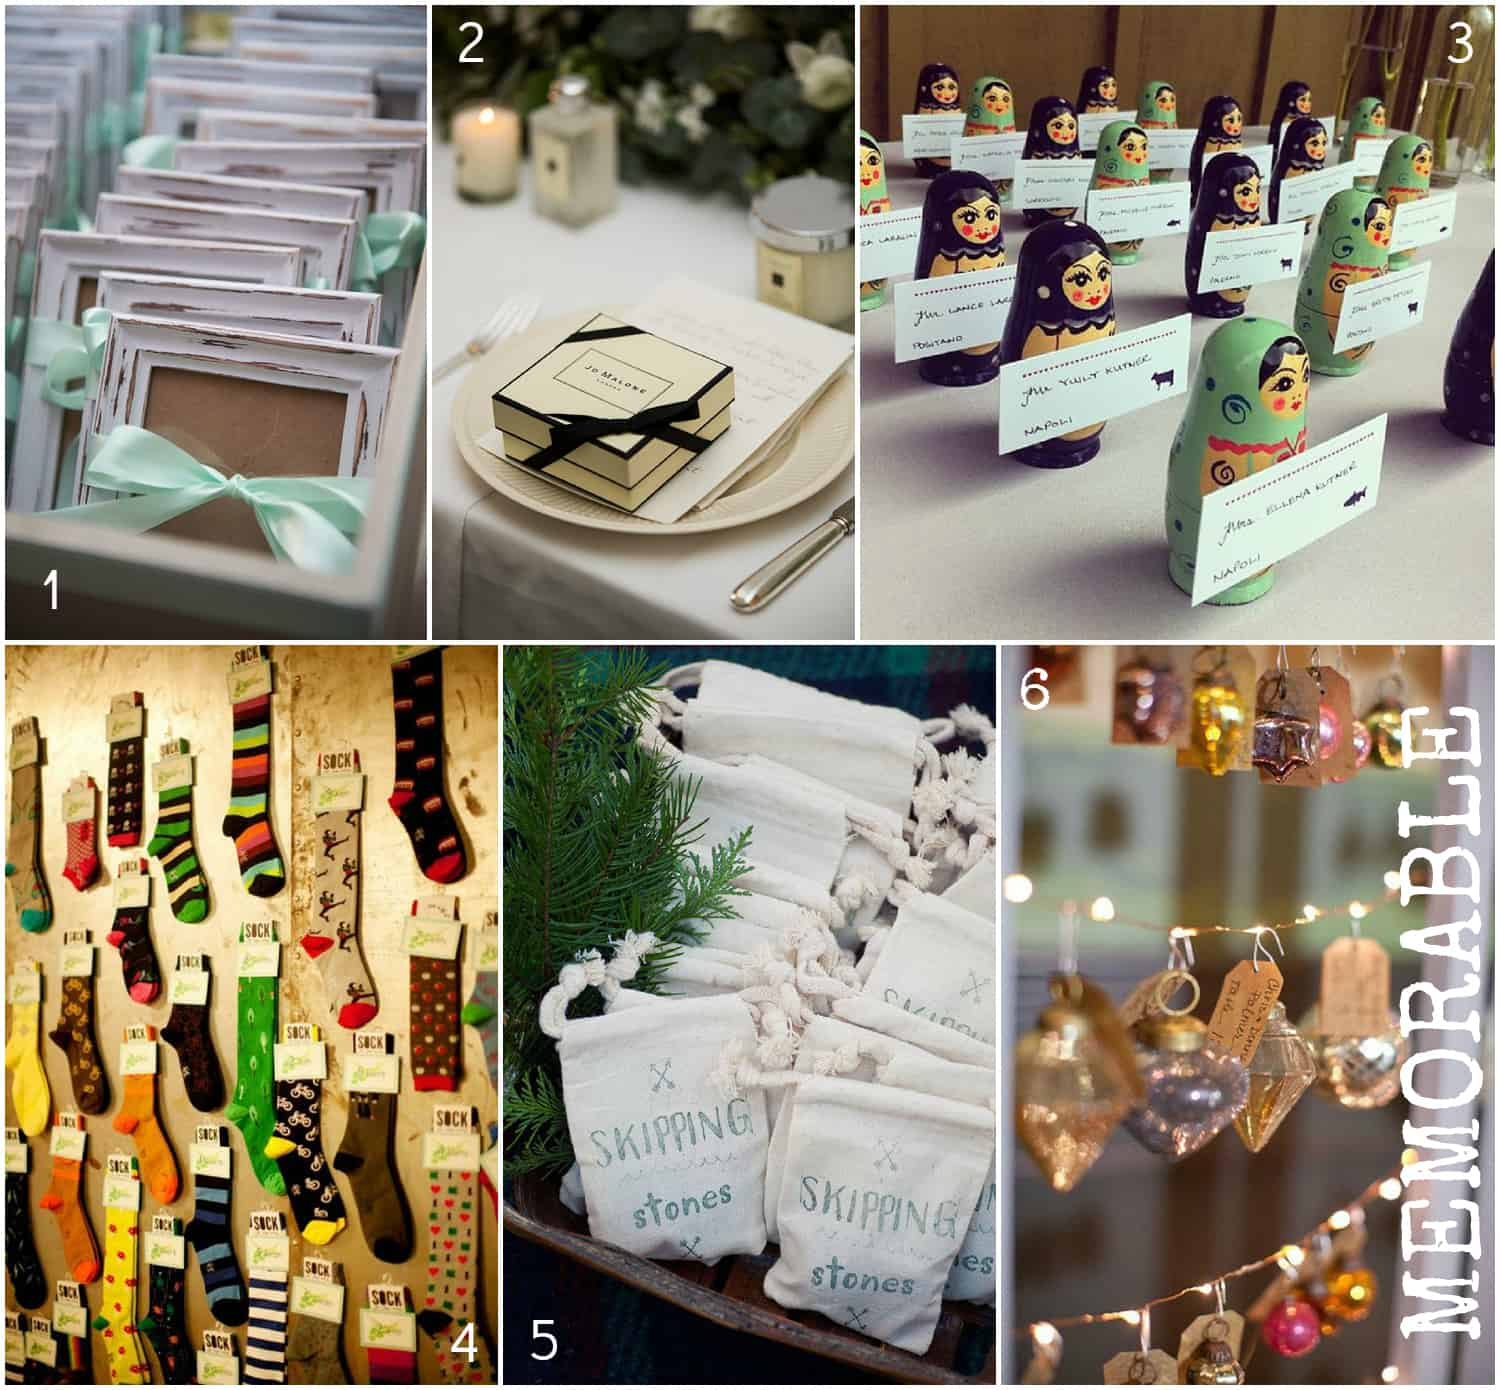 memorable wedding favours, socks, Jo Malone, picture frames, Russian dolls, Chrismas baubles, skimming stones